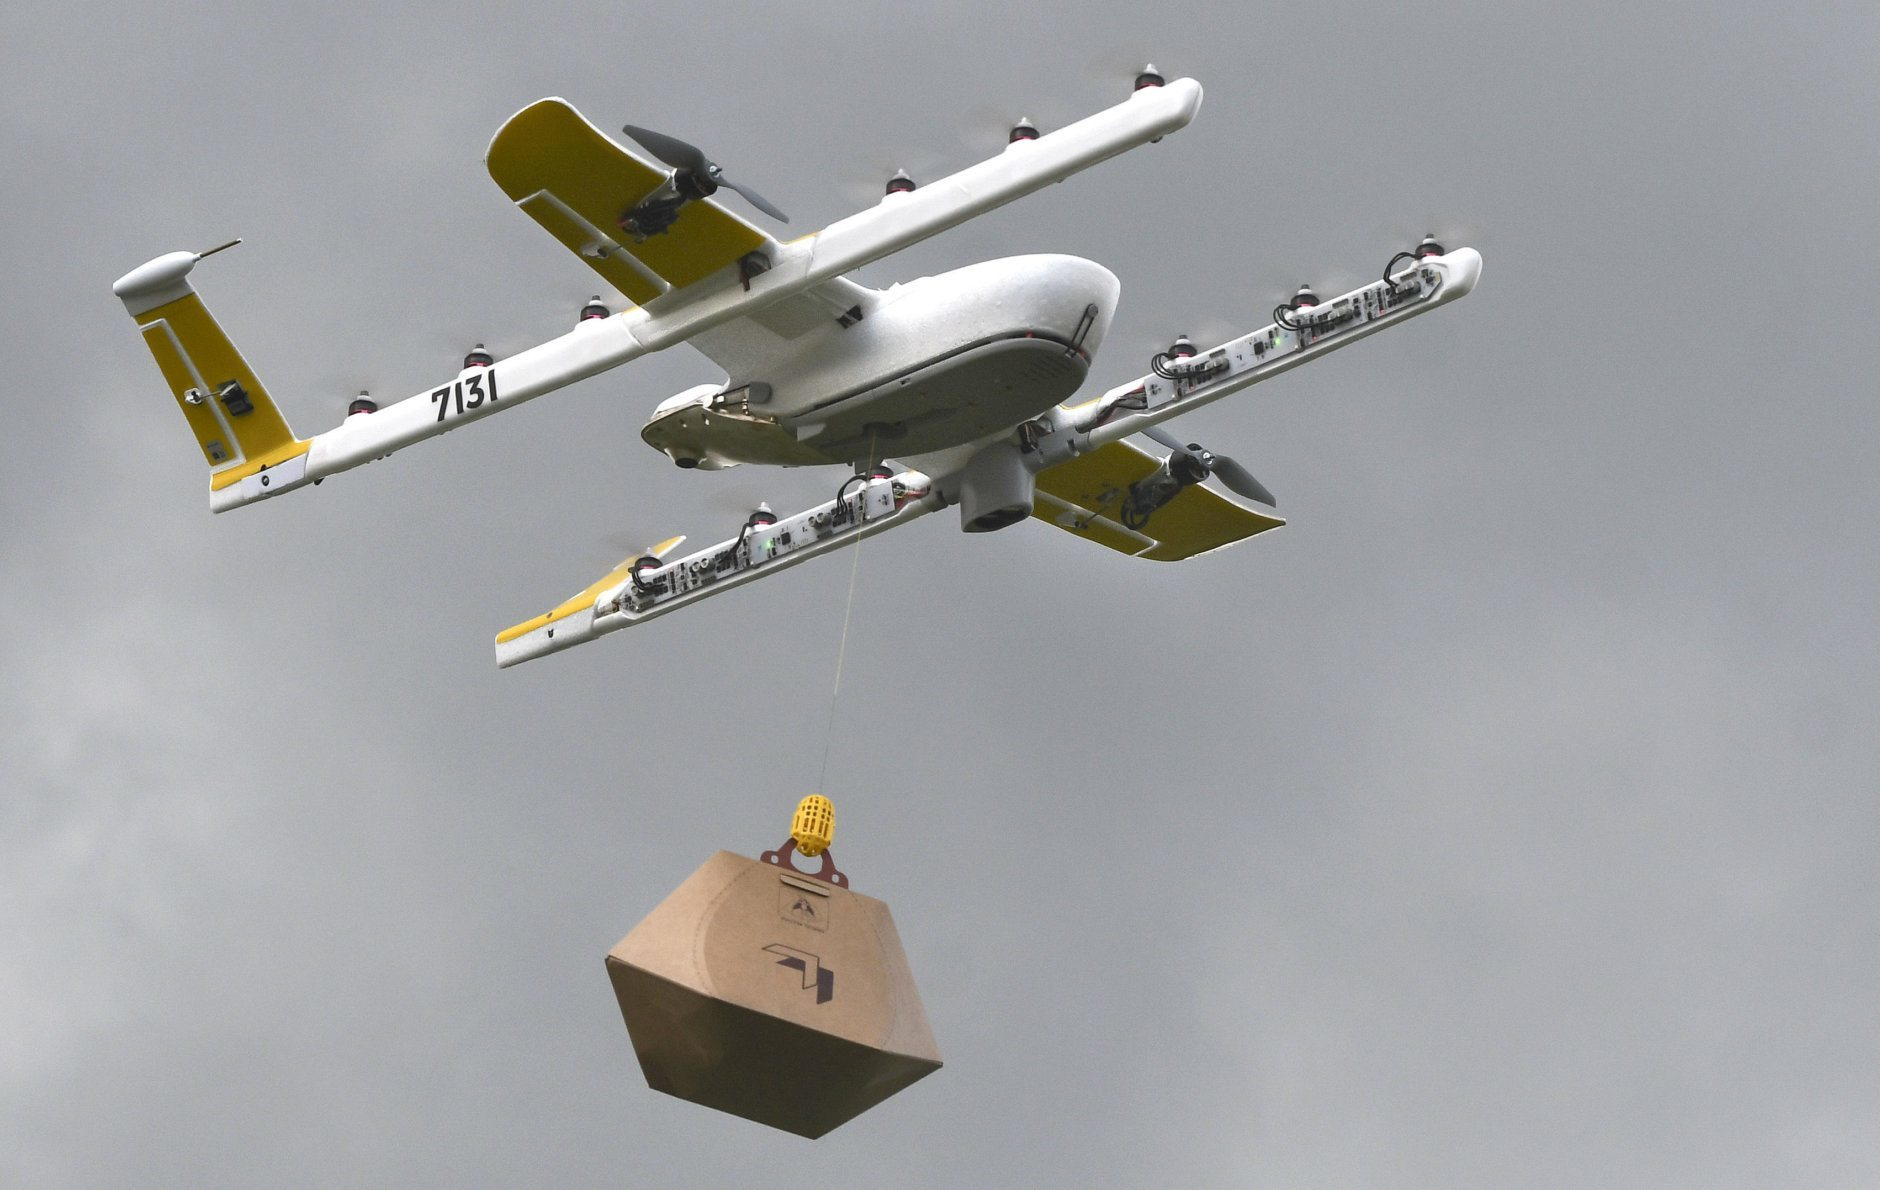 Delivery Drones May Finally Become A Reality In The US Skies